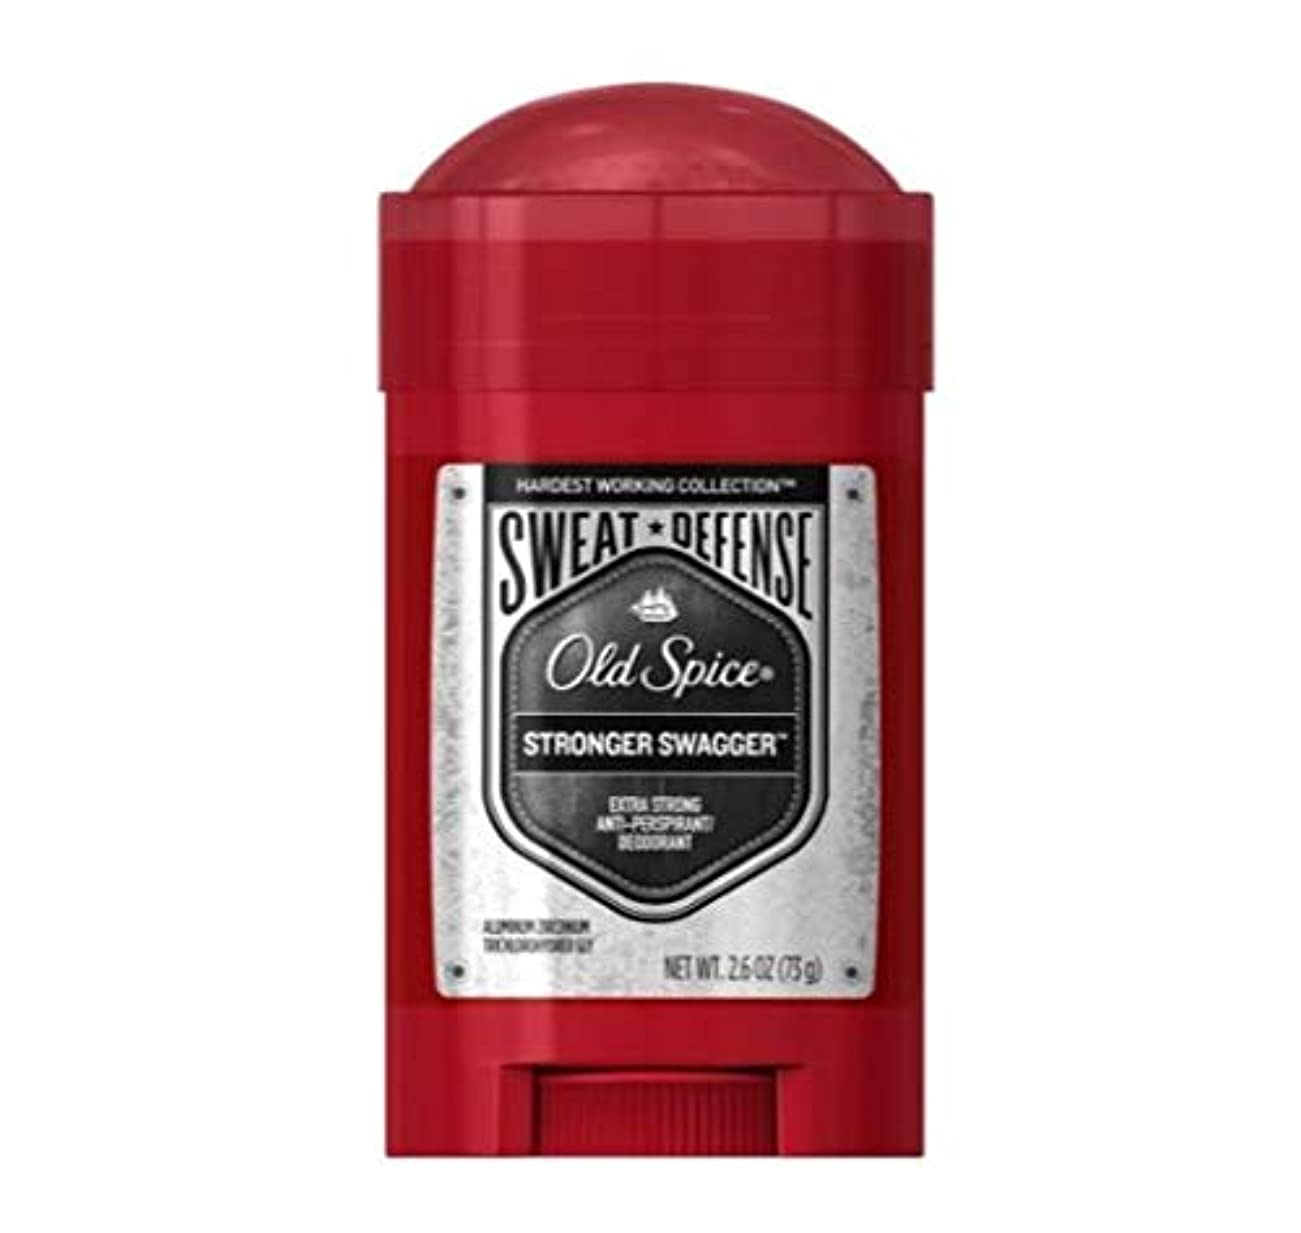 勝利維持ブルーベルOld Spice Hardest Working Collection Sweat Defense Stronger Swagger Antiperspirant and Deodorant - 2.6oz オールドスパイス...